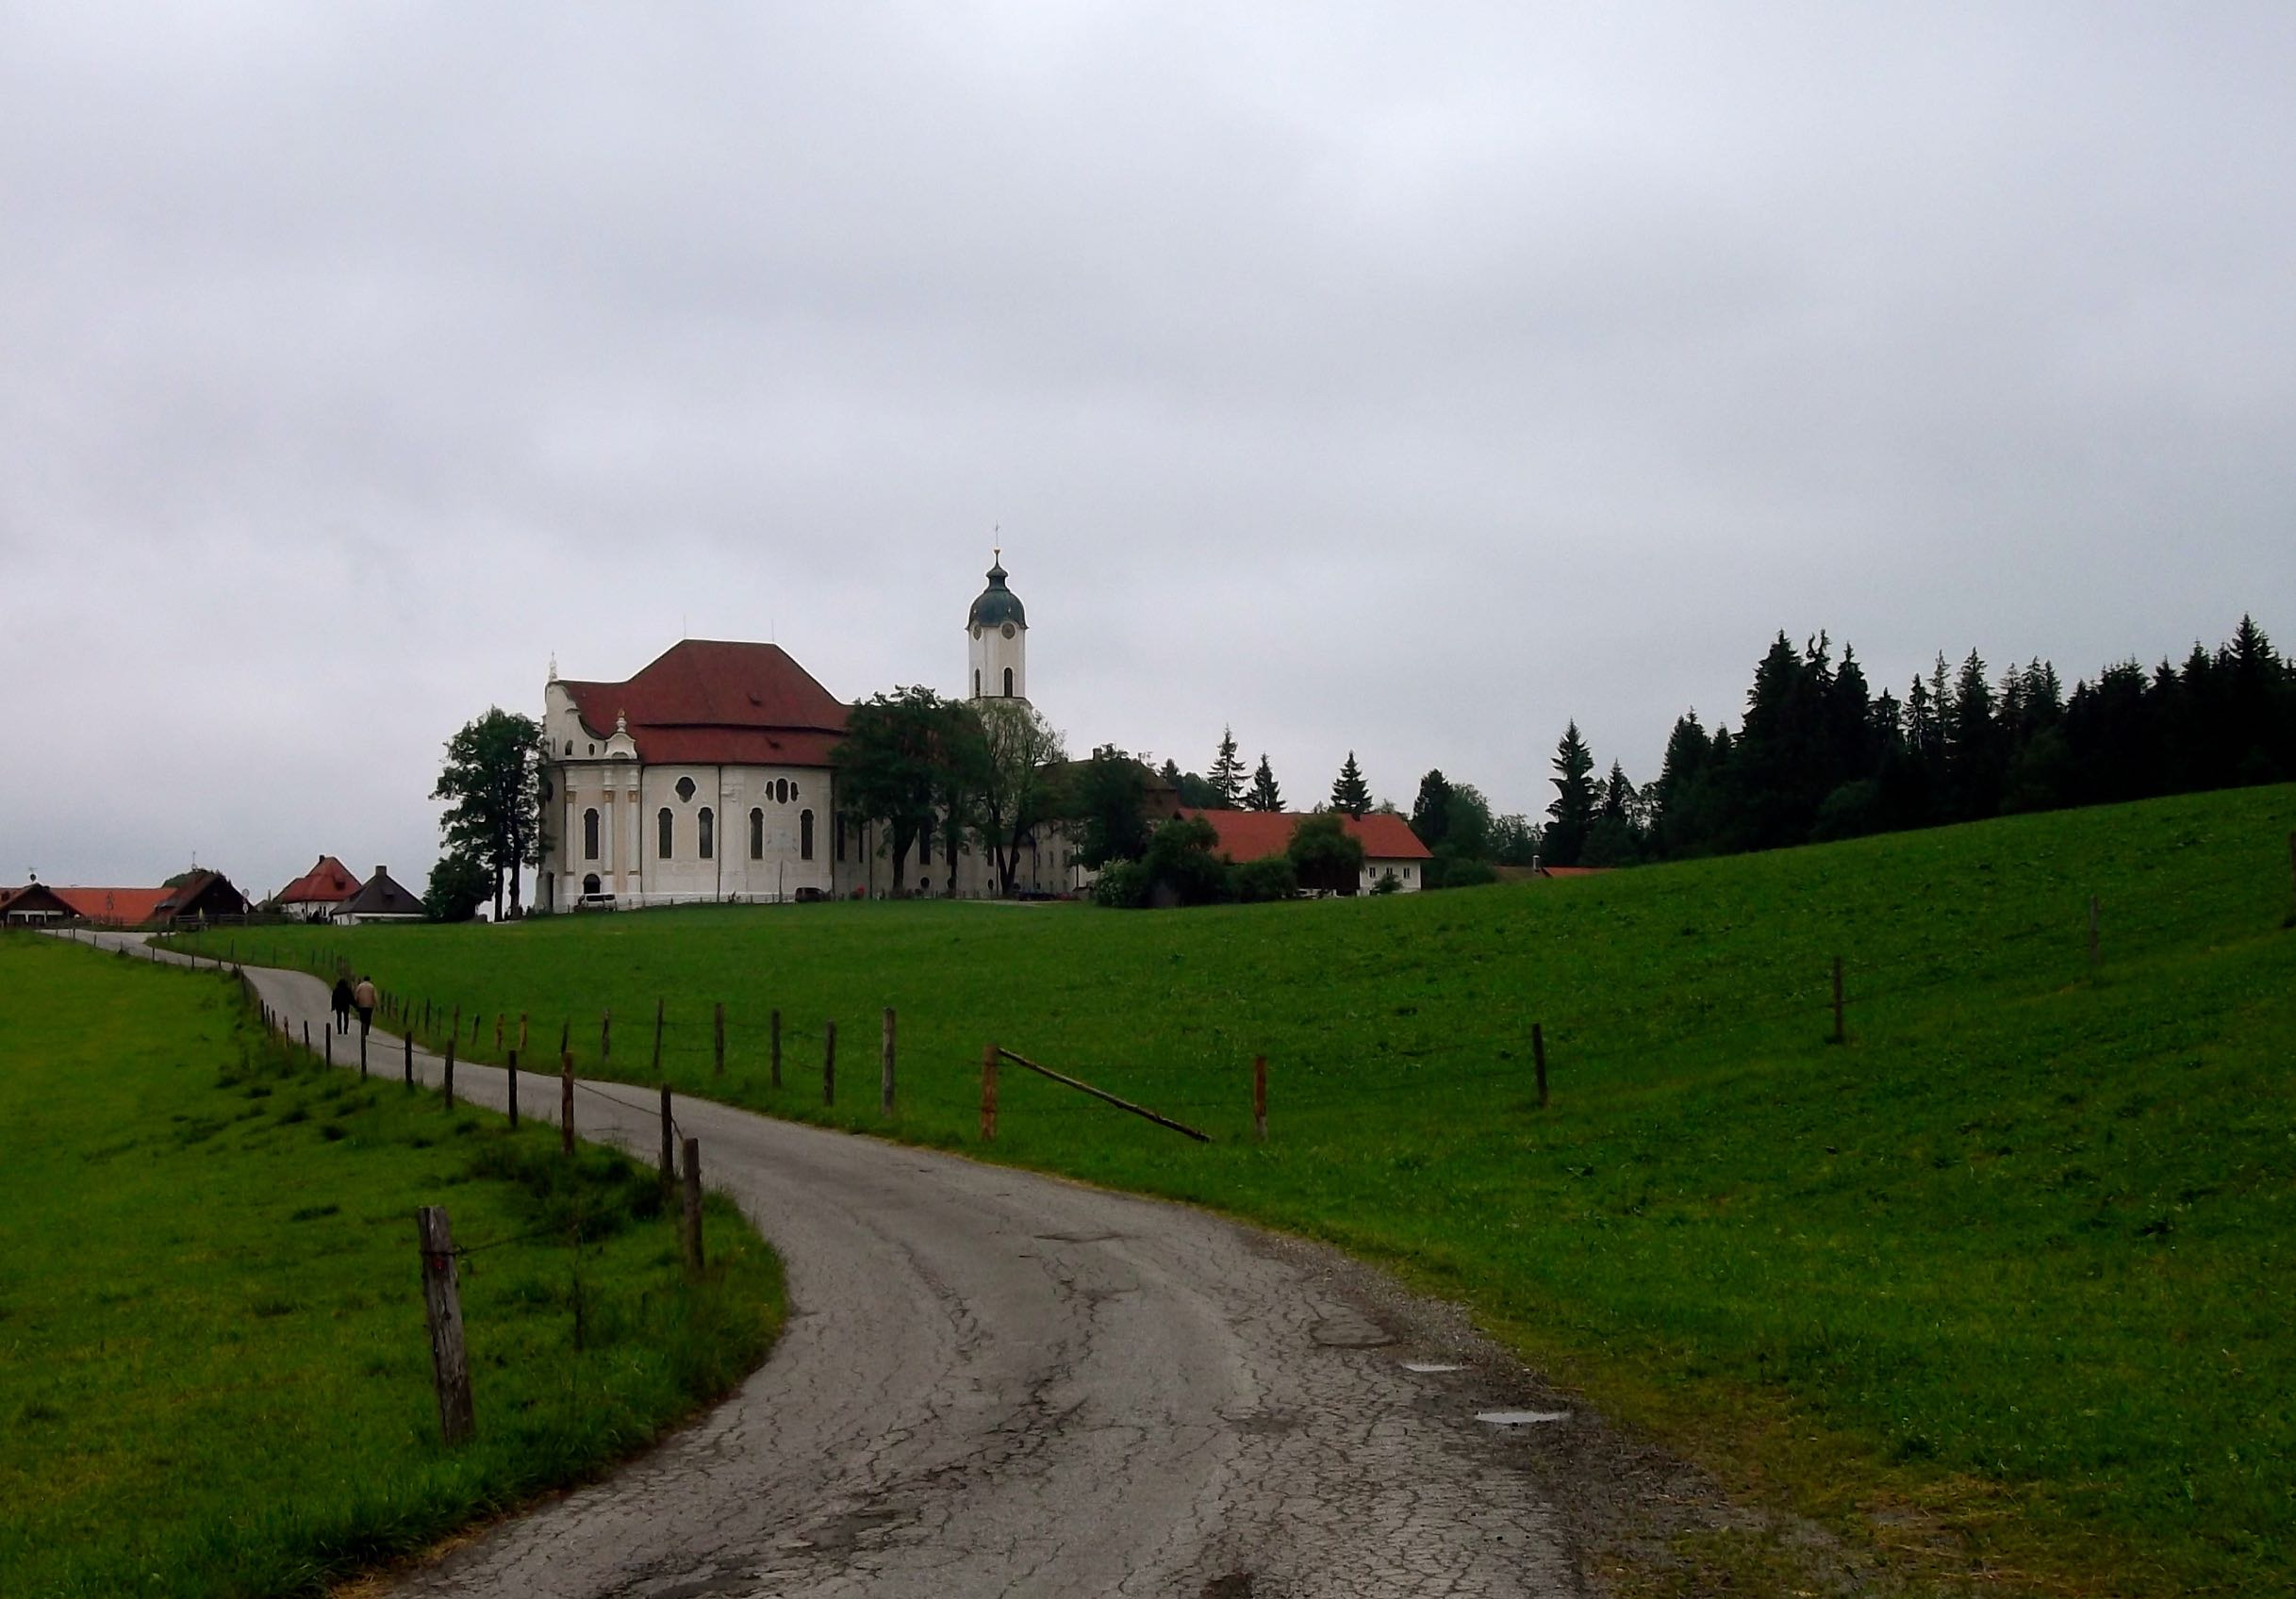 VIEW OF THE WIESKIRCHE EMERGING FROM THE WOODS